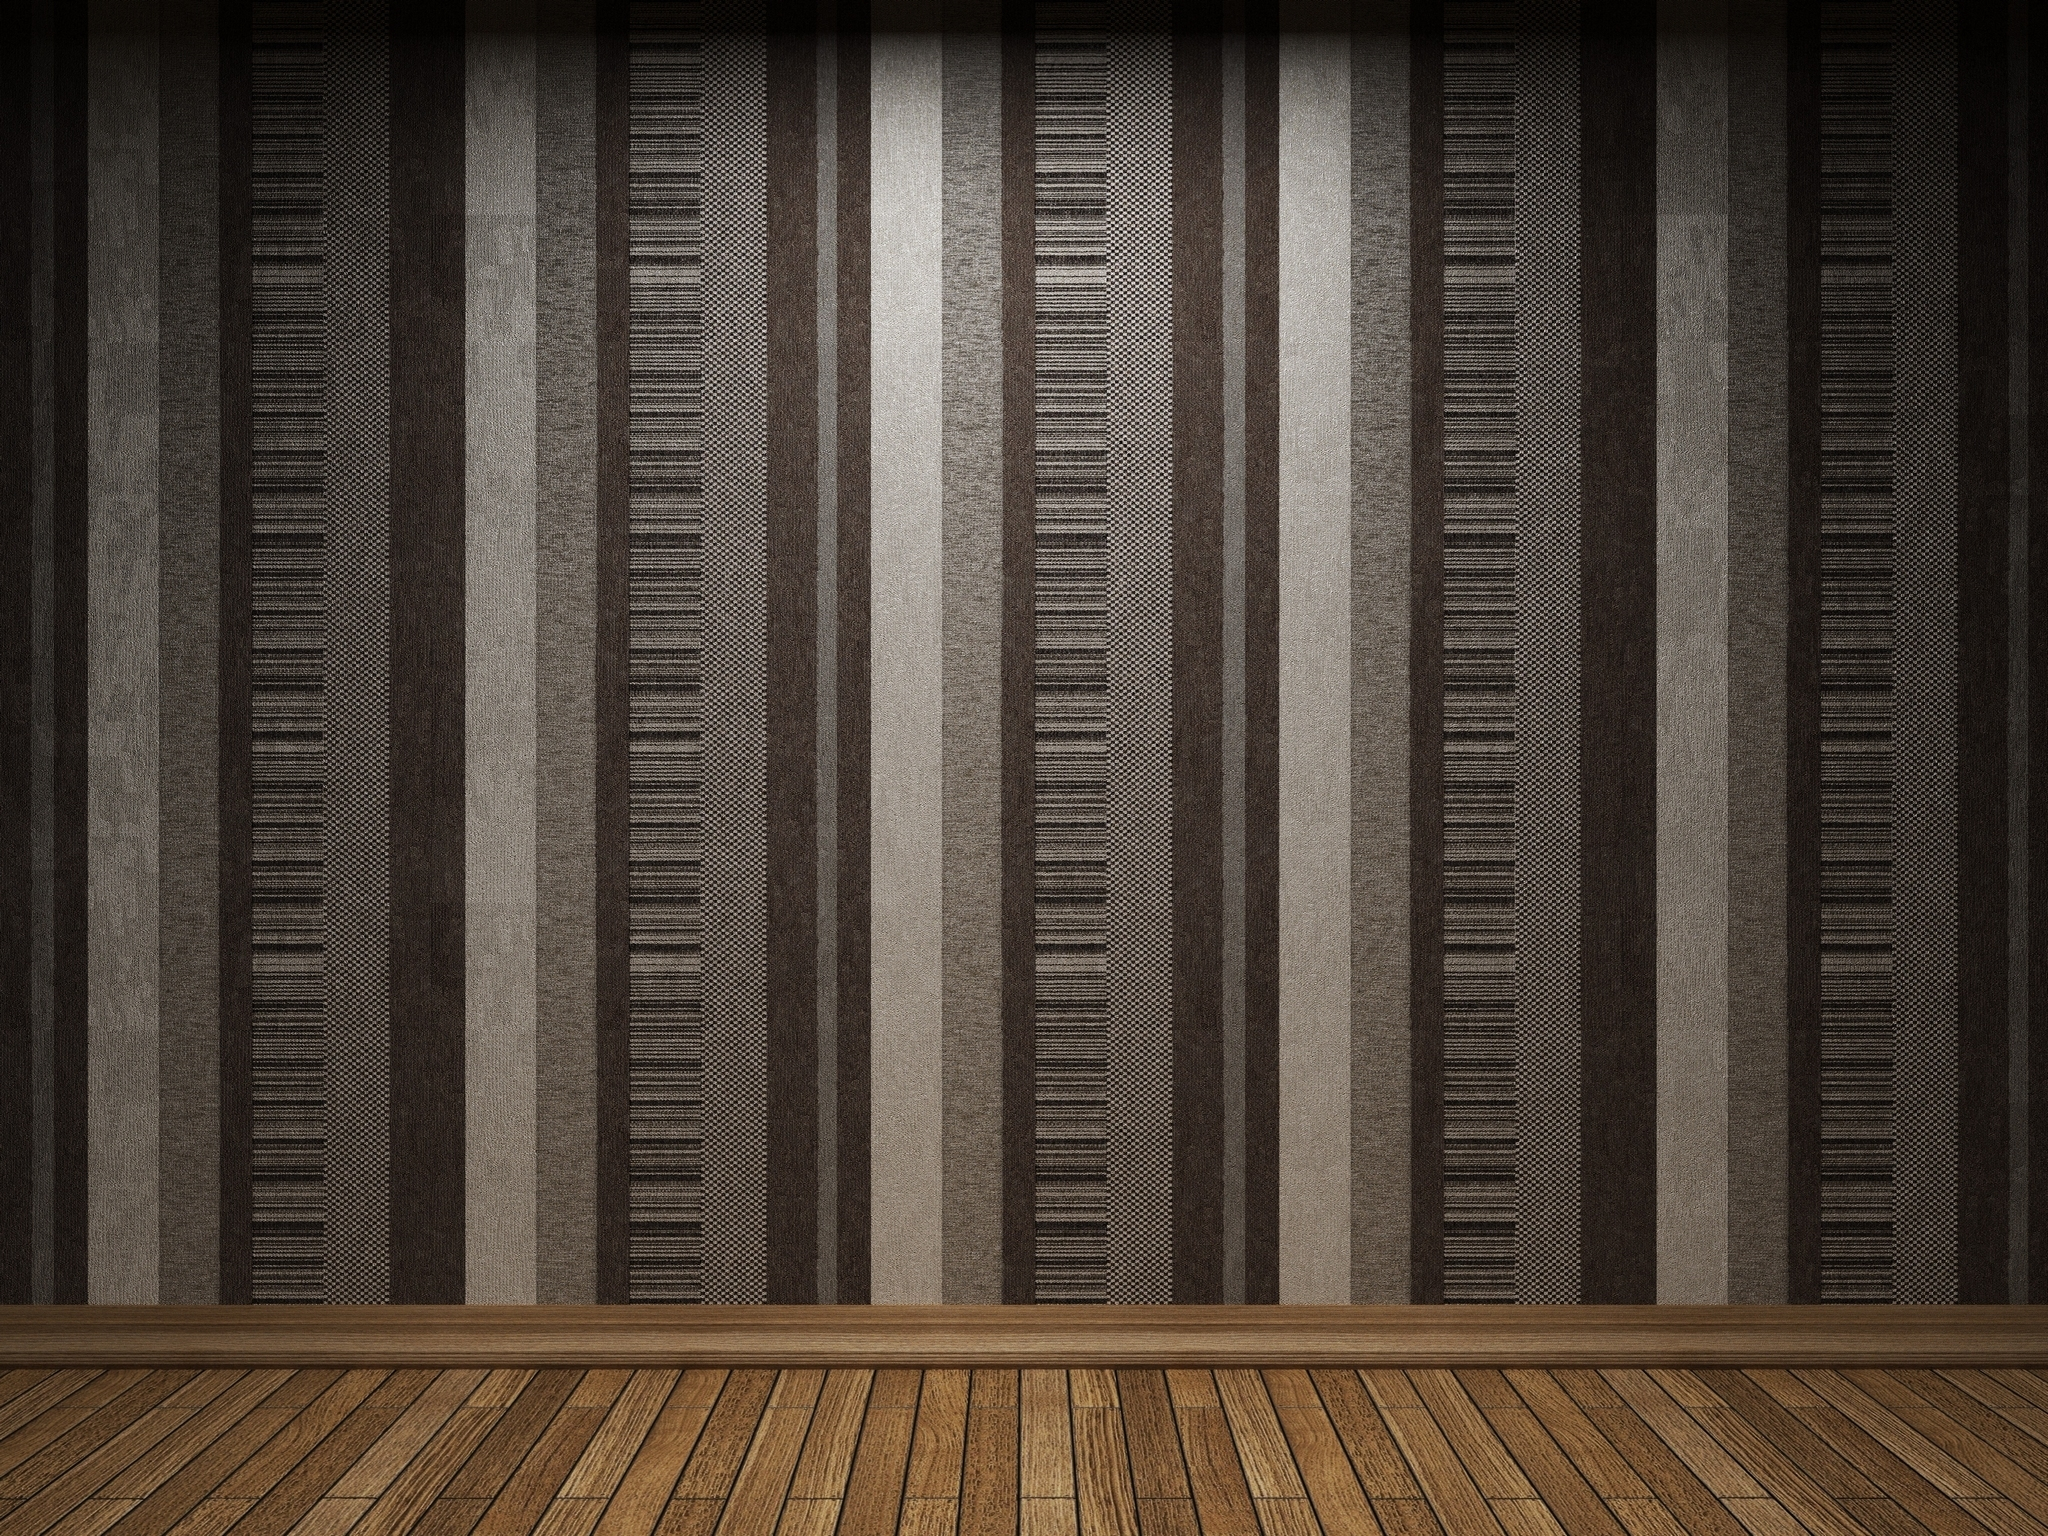 Wall Designs Designs Images Elegant Wall Design Hd Wallpaper And